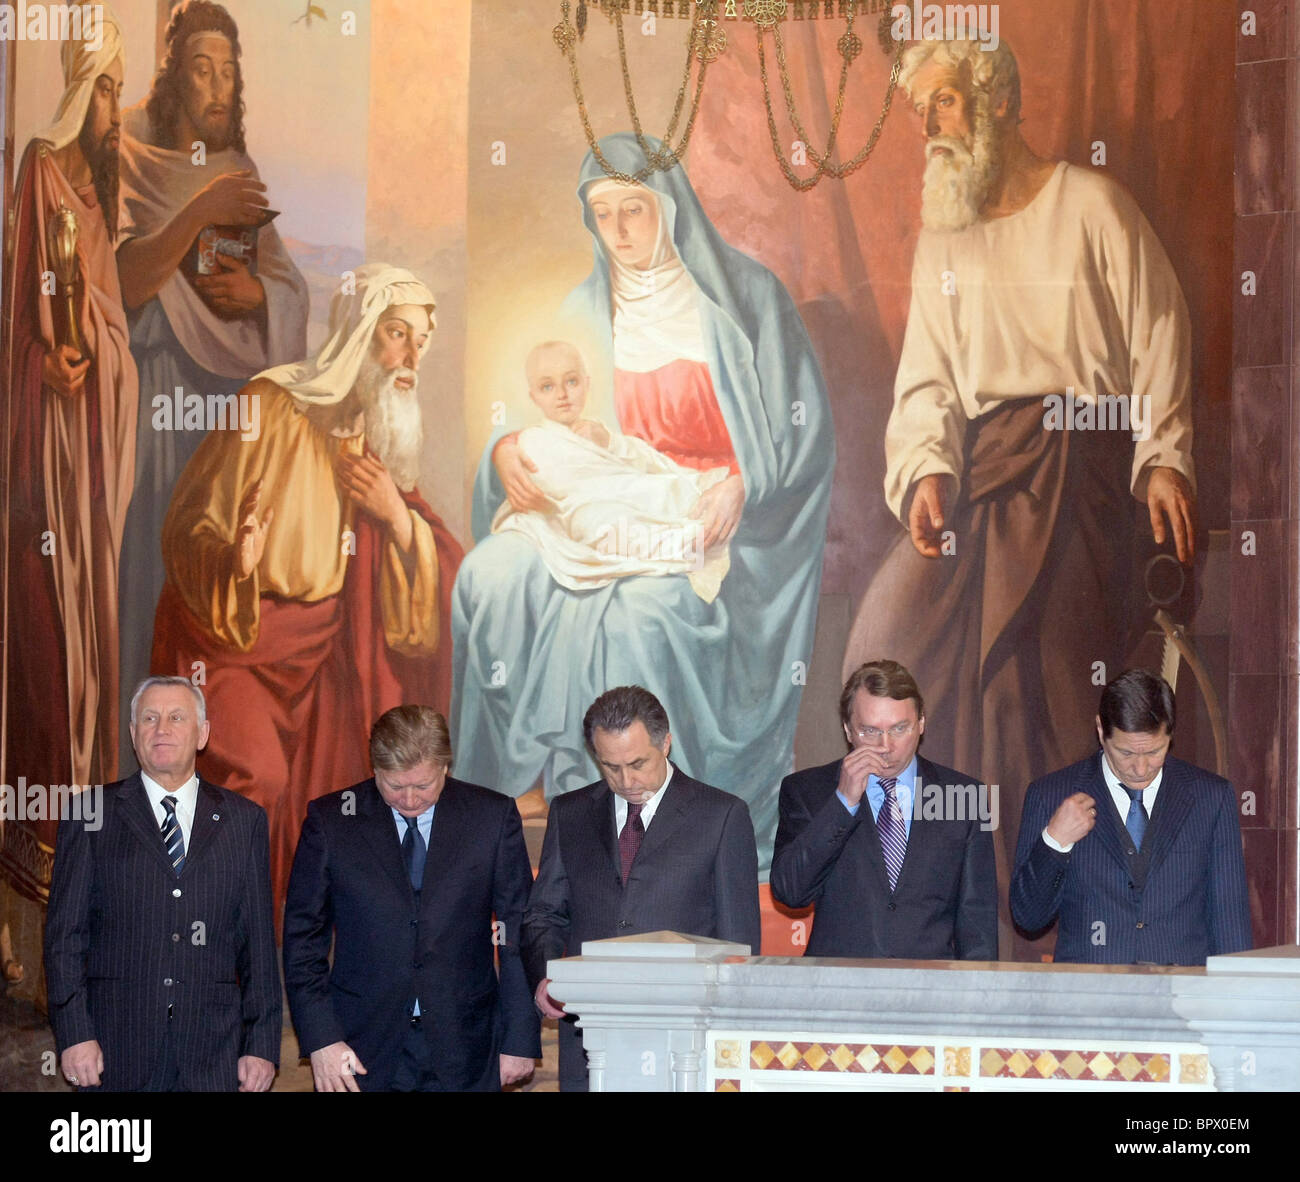 Patriarch Kirill blesses Russian Olympic Team - Stock Image